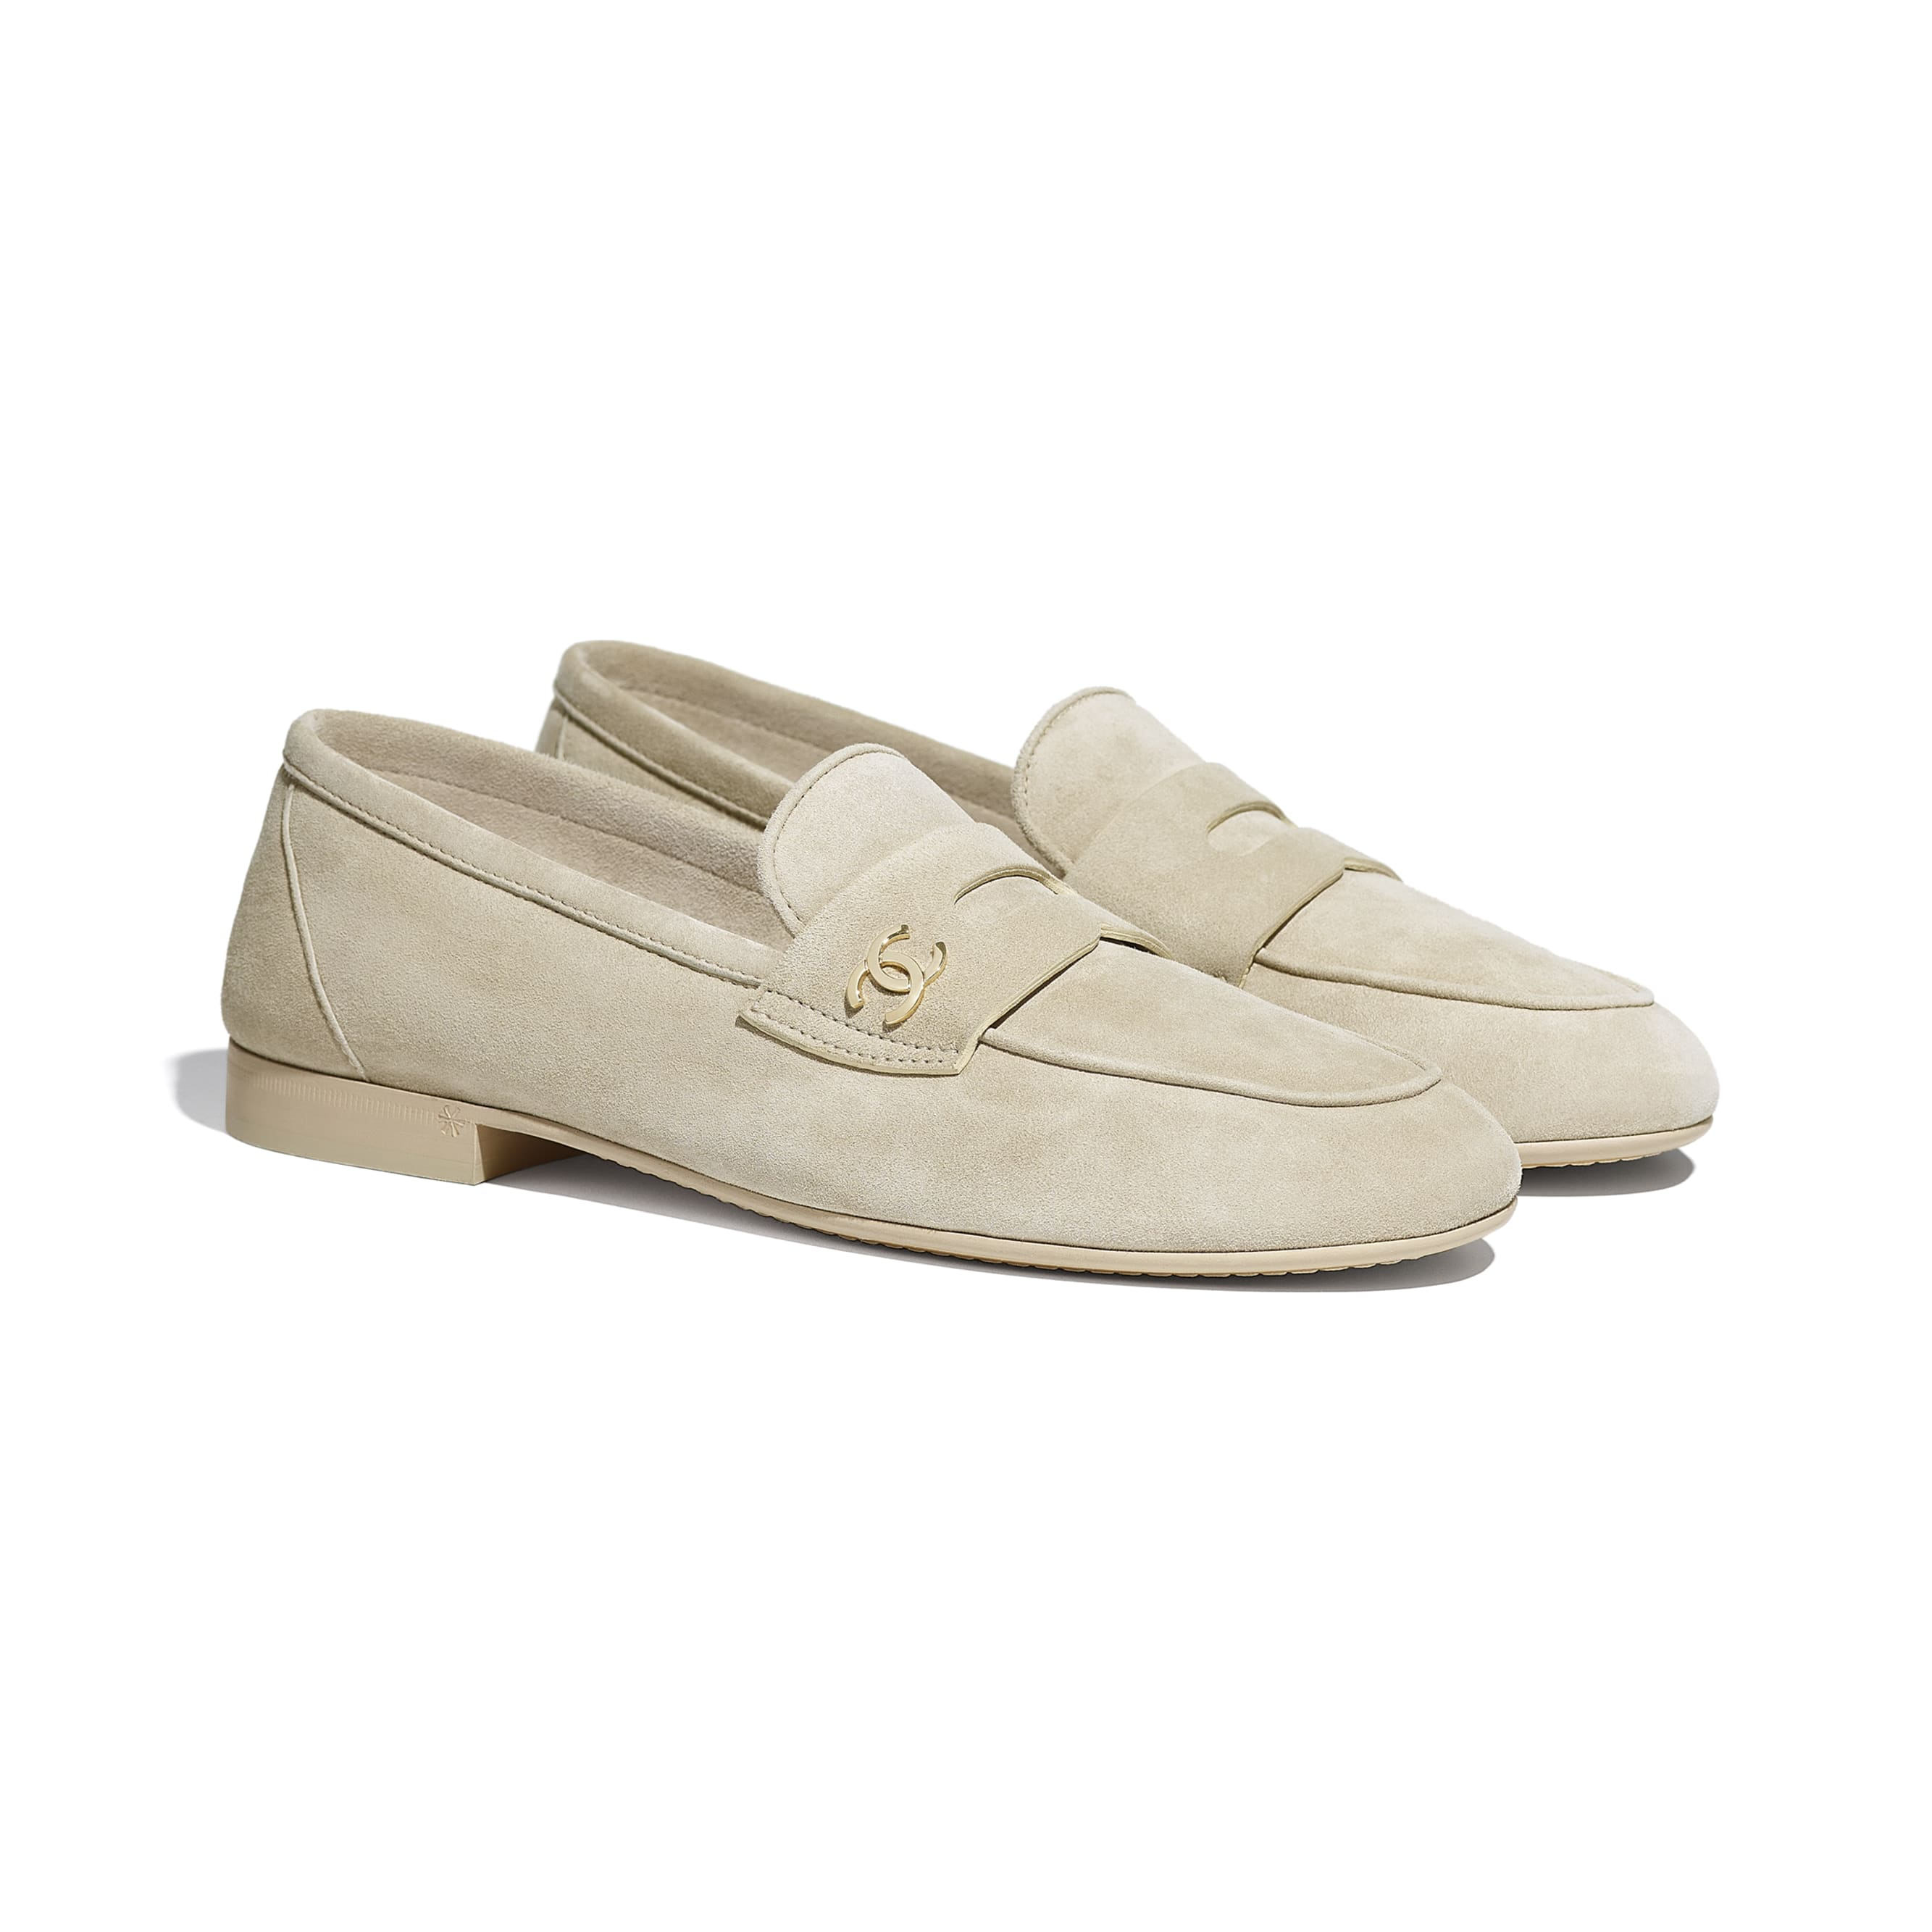 Loafers - Beige - Suede Calfskin - CHANEL - Alternative view - see standard sized version